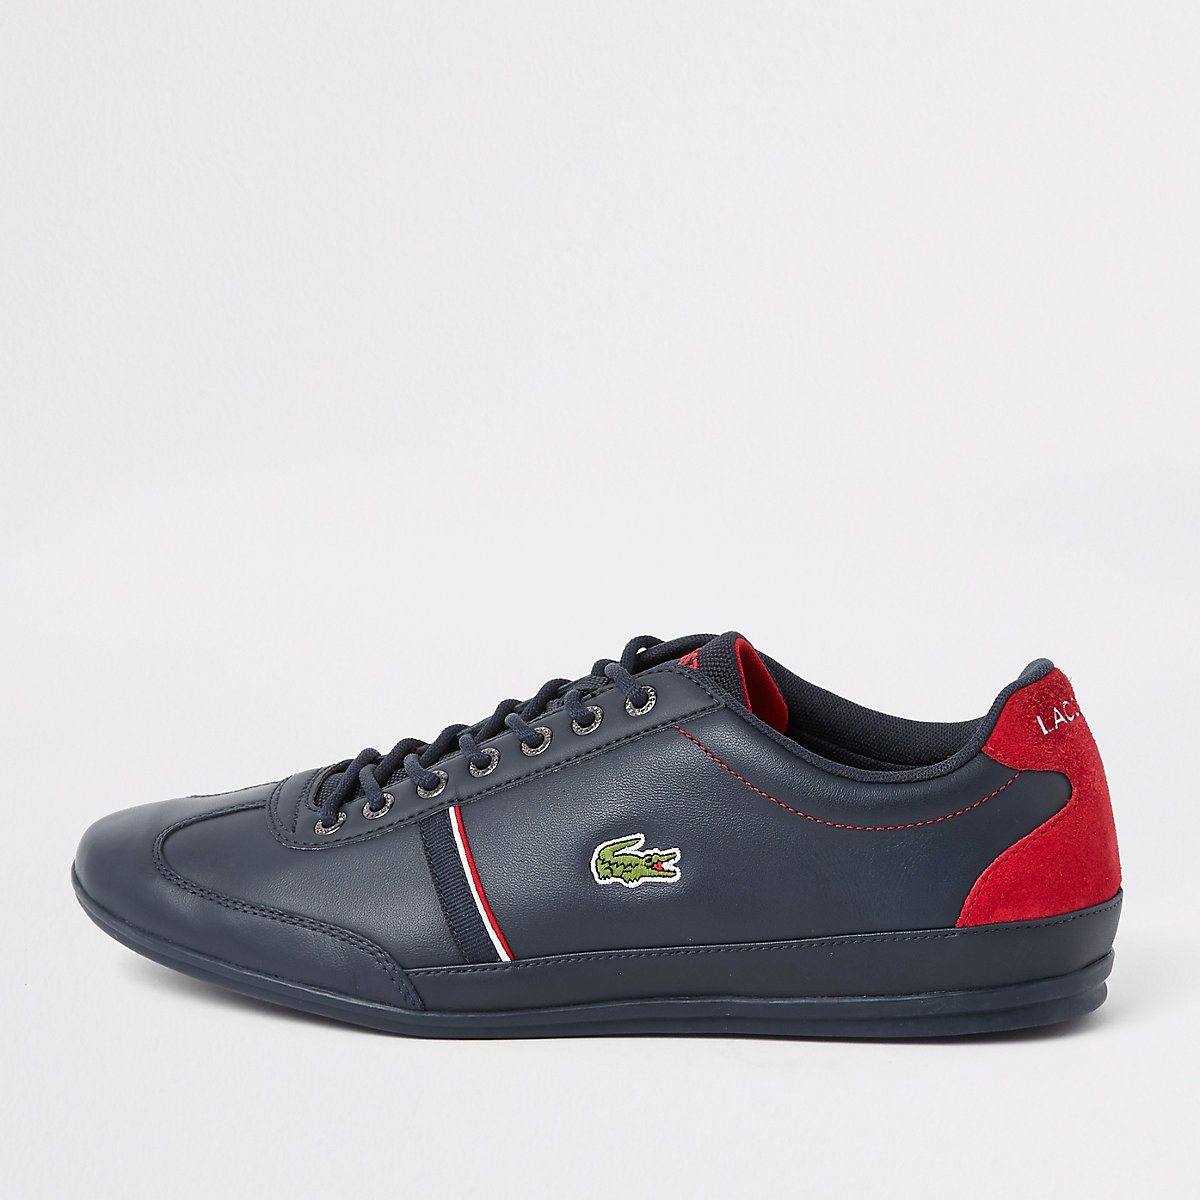 Lacoste navy leather tape lace-up trainers